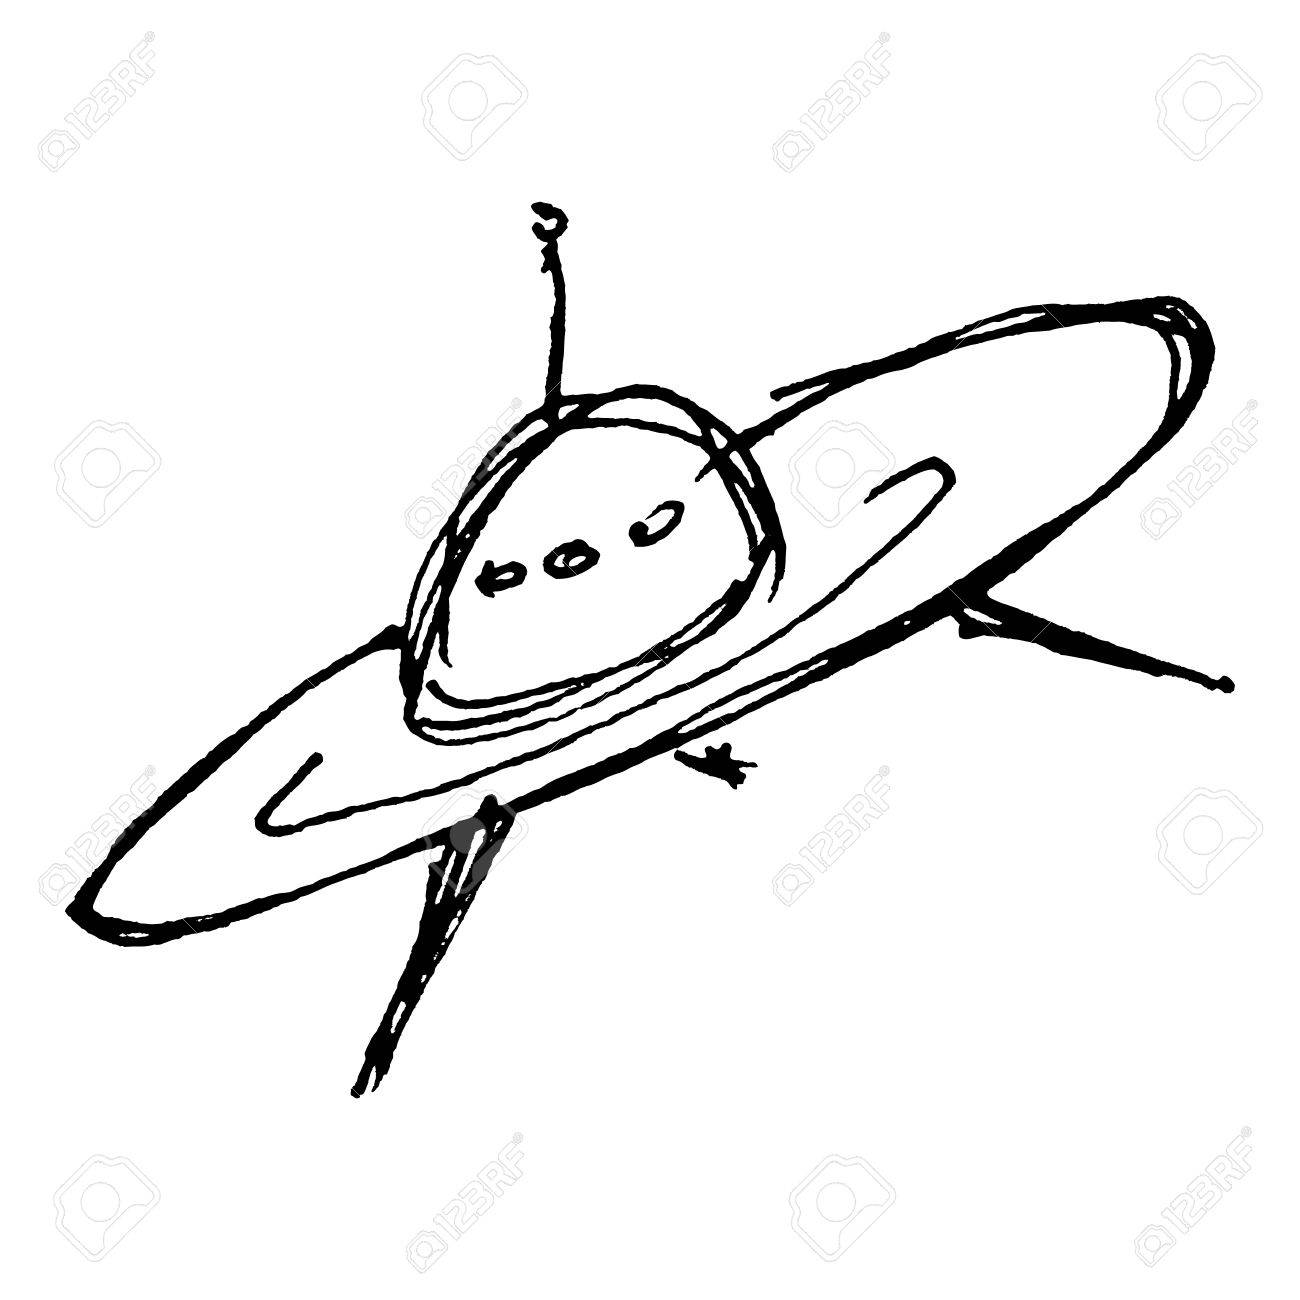 1300x1300 Hand Drawn Cartoon Style Spaceship Design Stock Photo, Picture